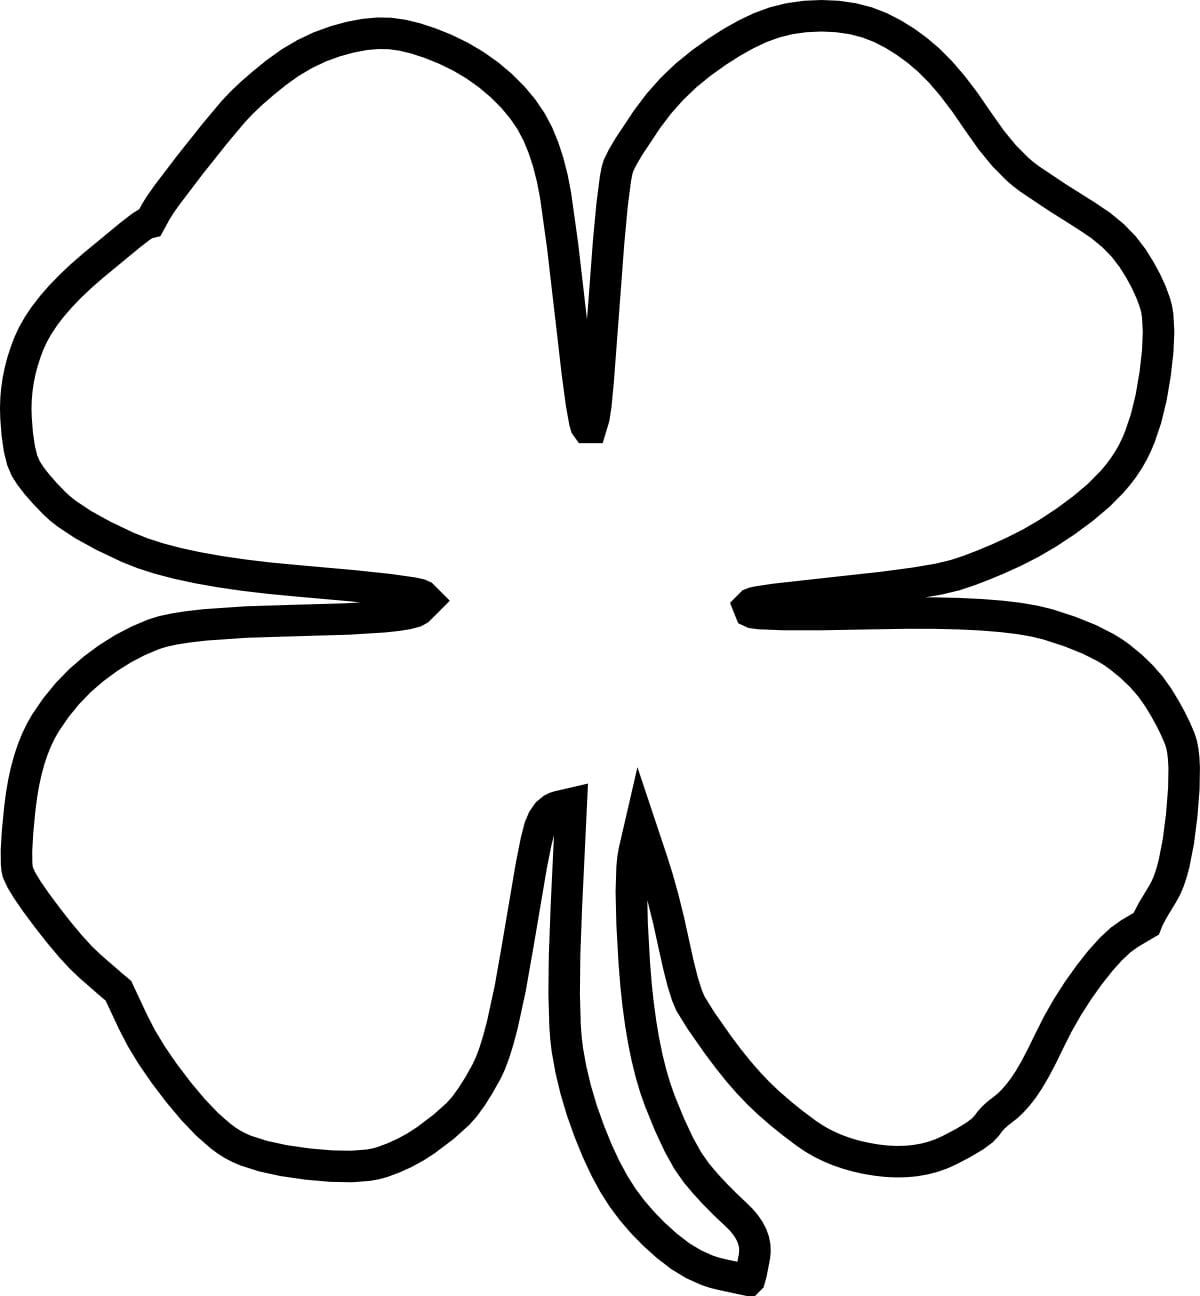 Free Four Leaf Clover Outline Download Free Clip Art